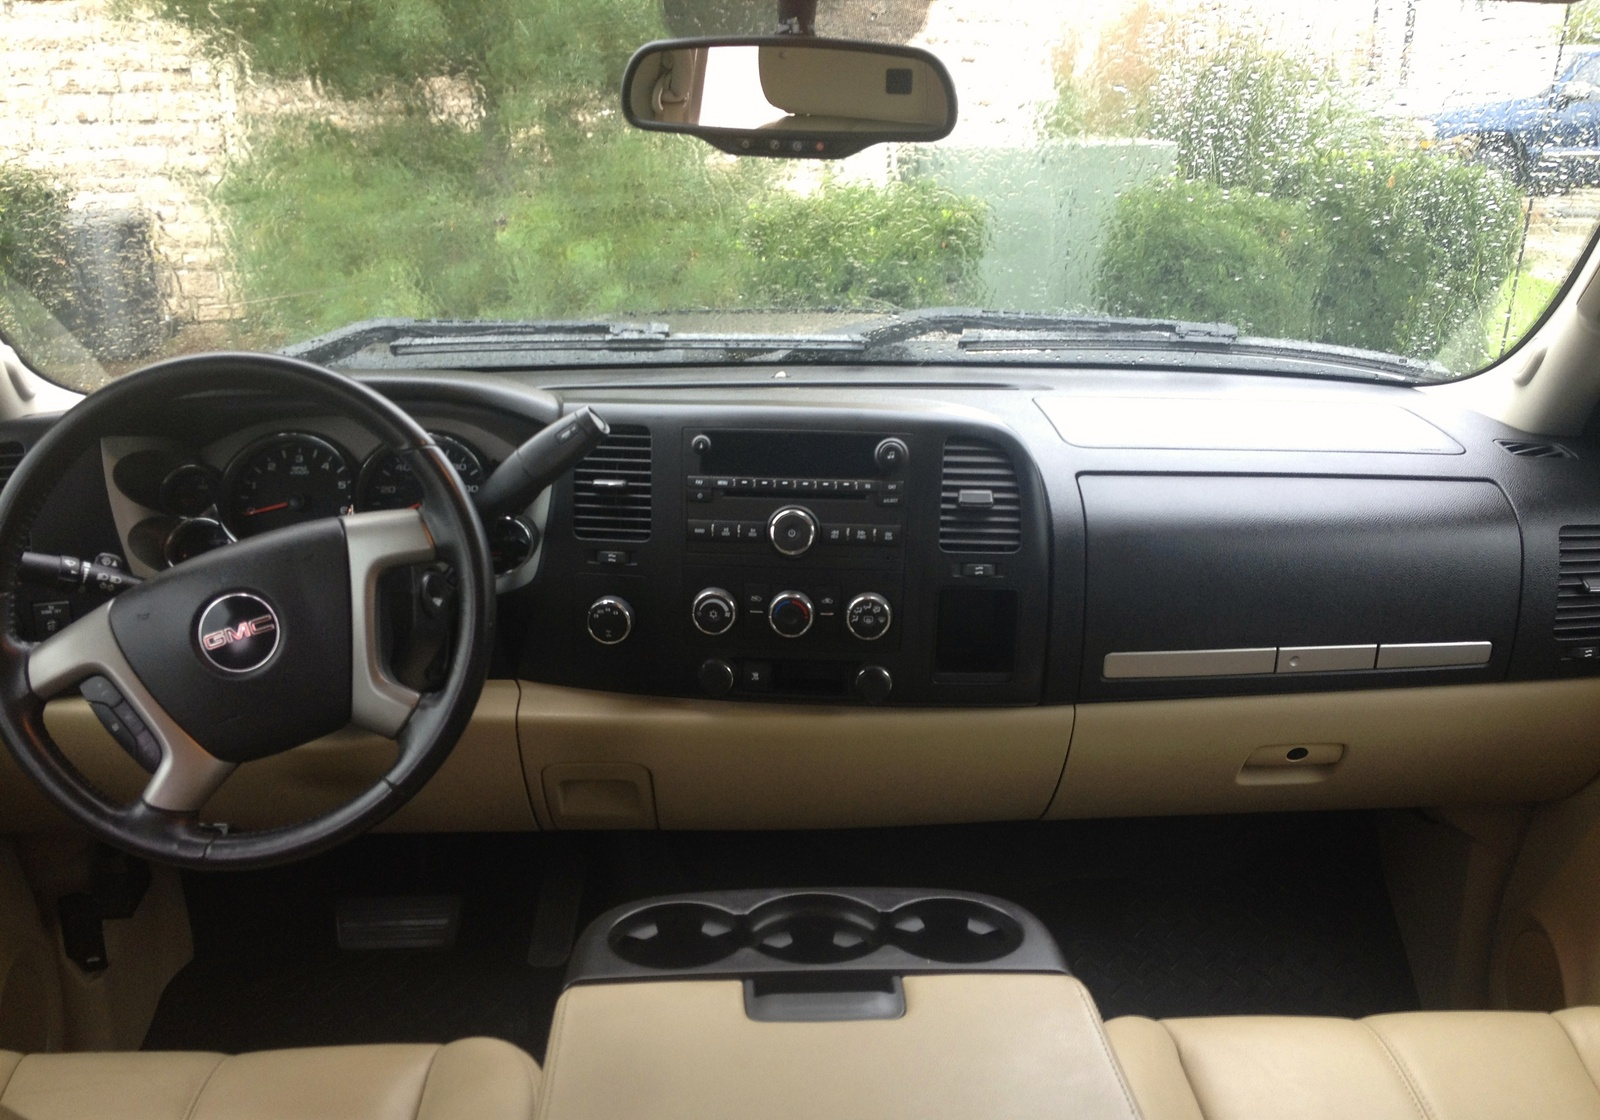 2001 Gmc Jimmy Interior